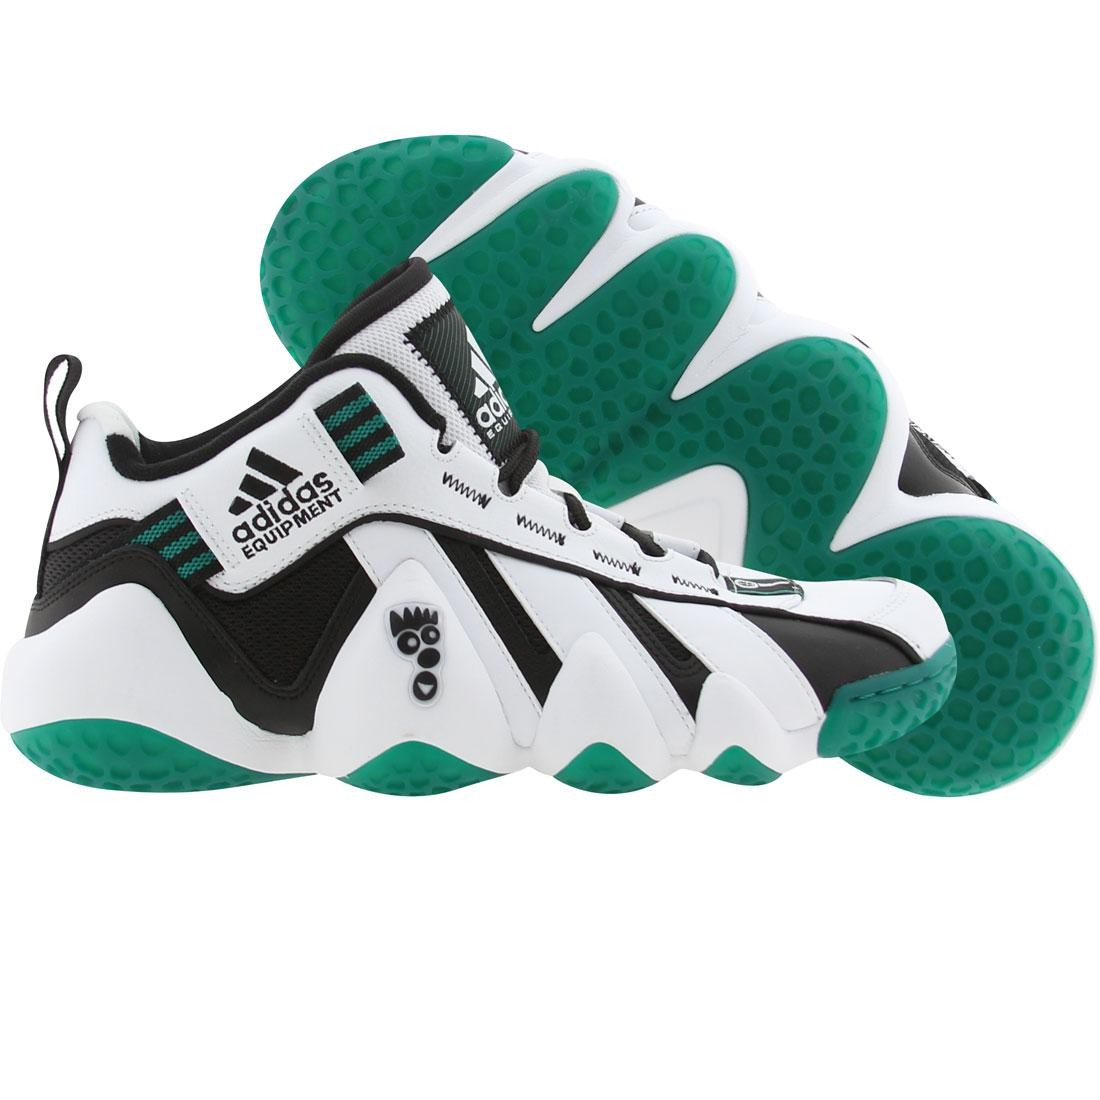 official photos a1186 d8d05 Adidas Men EQT Key Trainer - Keyshawn Johnson (black / runninwhite / subgrn)